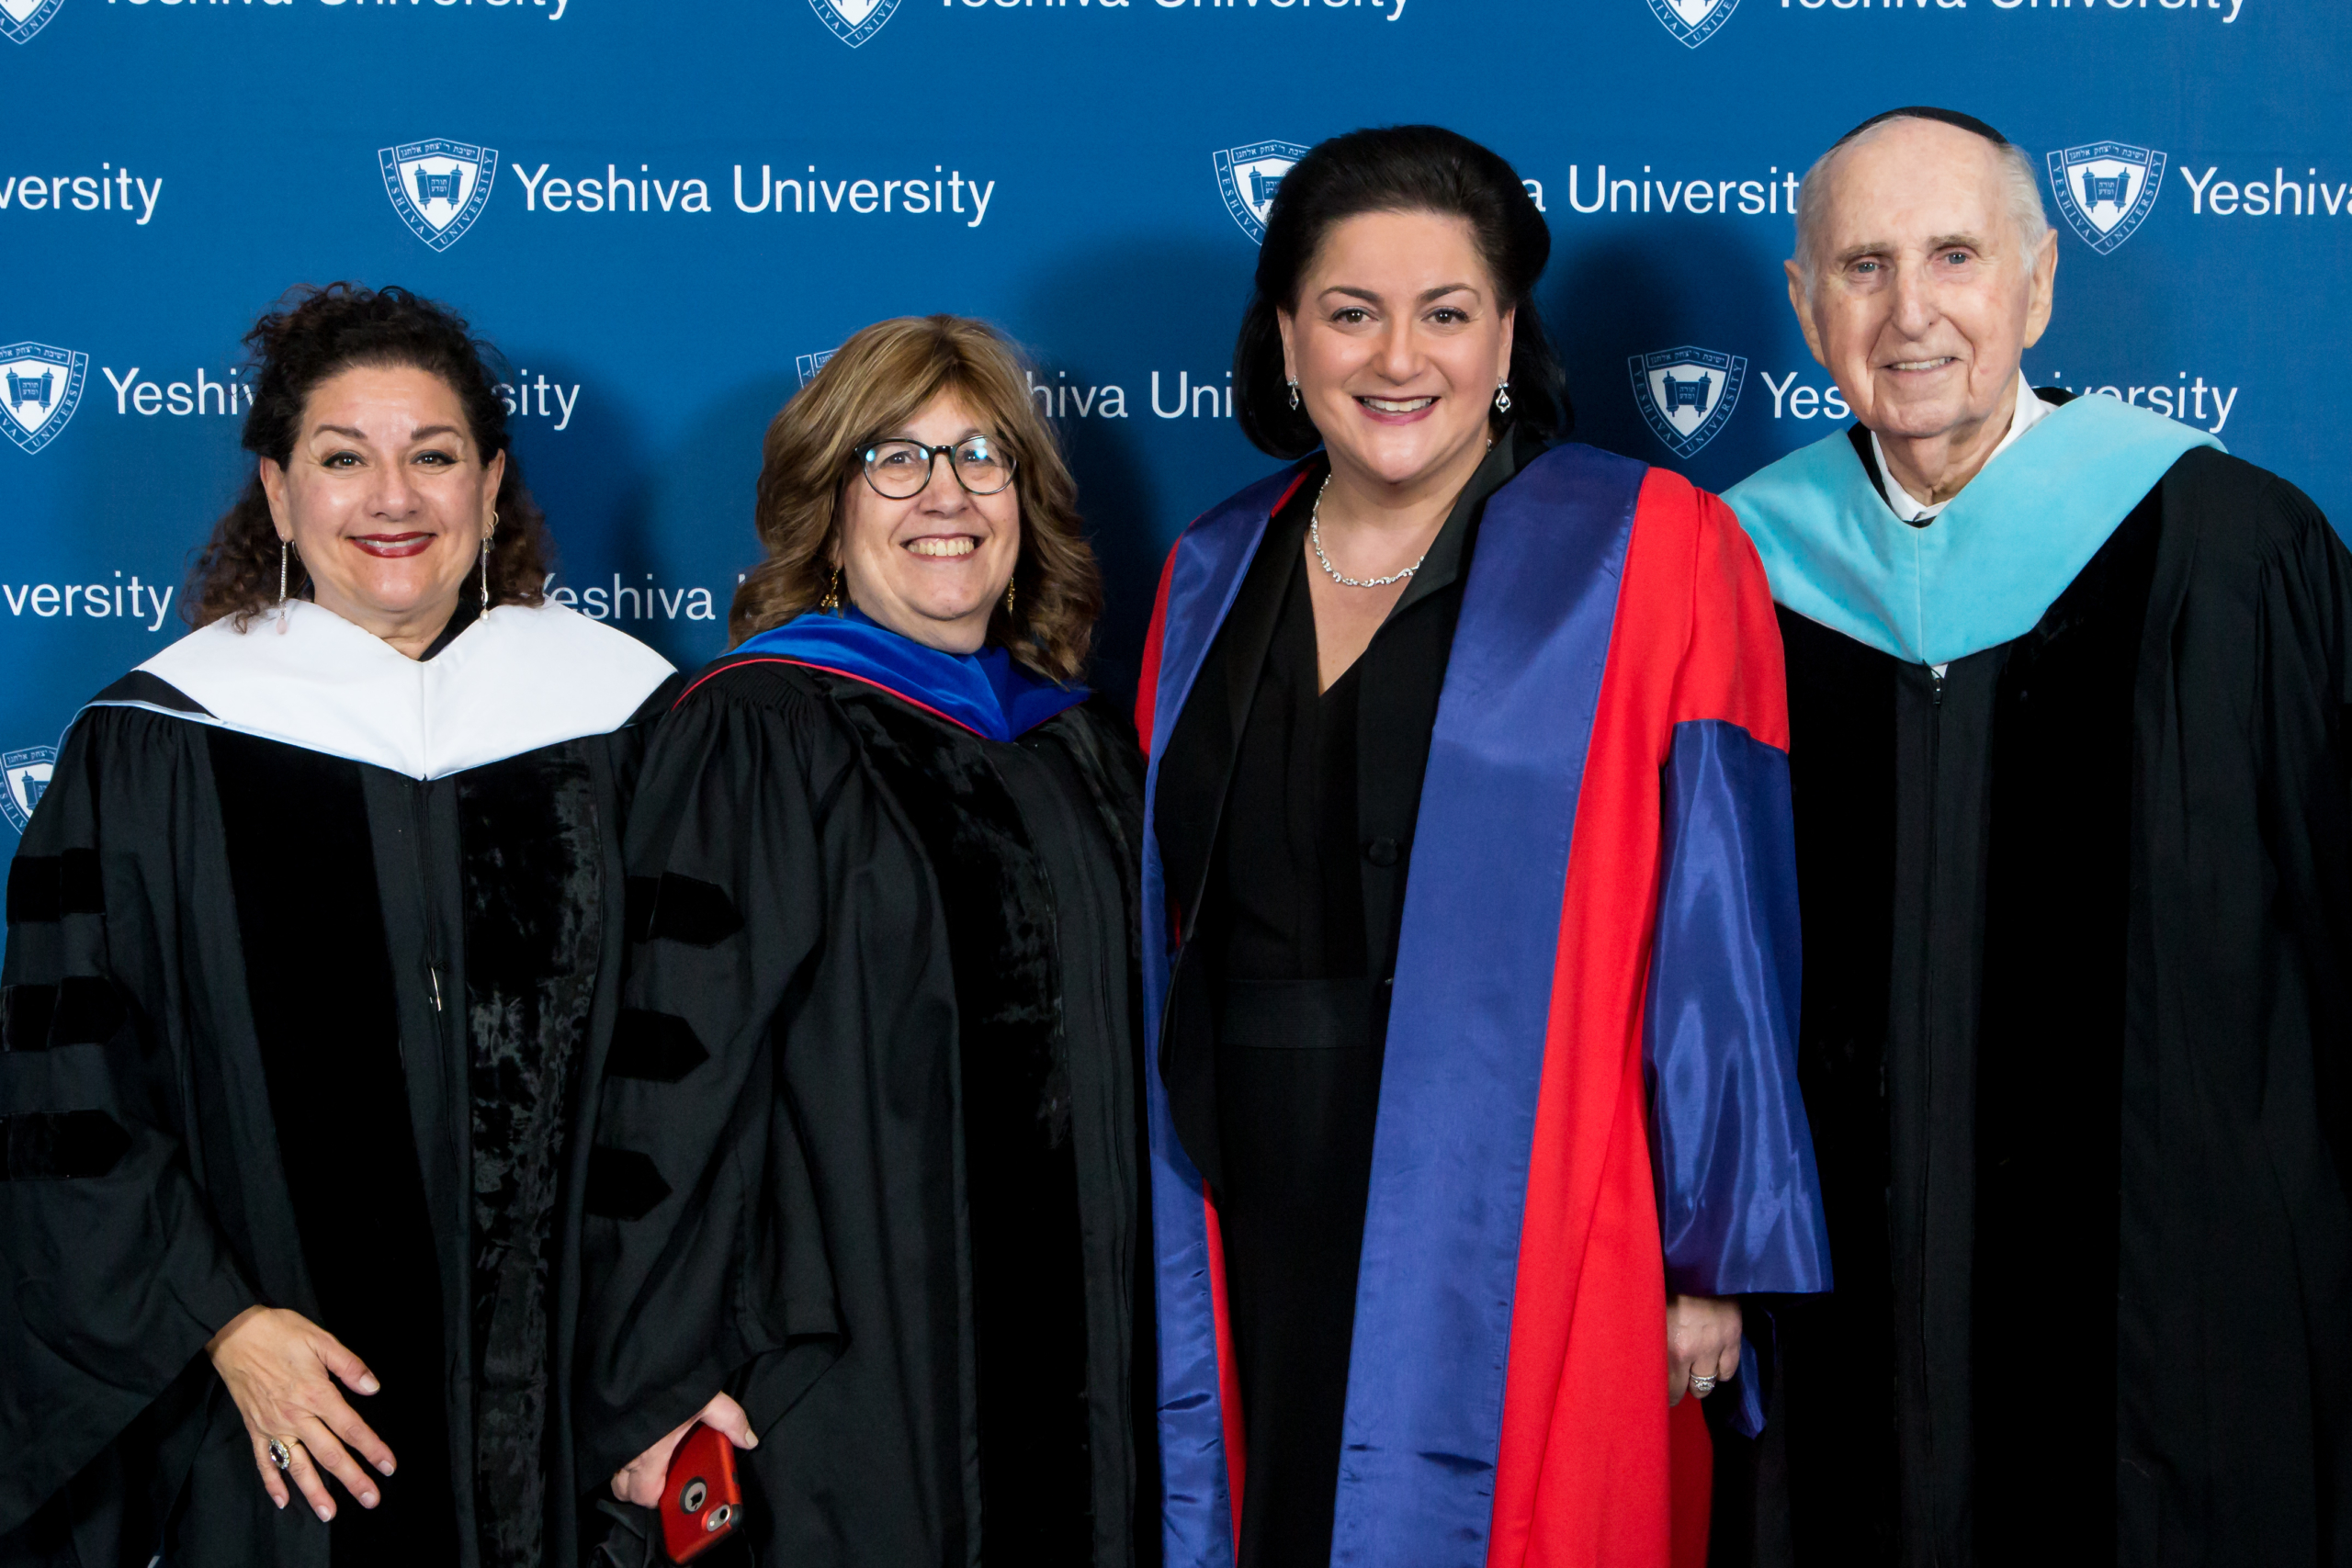 The Azrieli Foundation Donates $18 Million to Yeshiva University